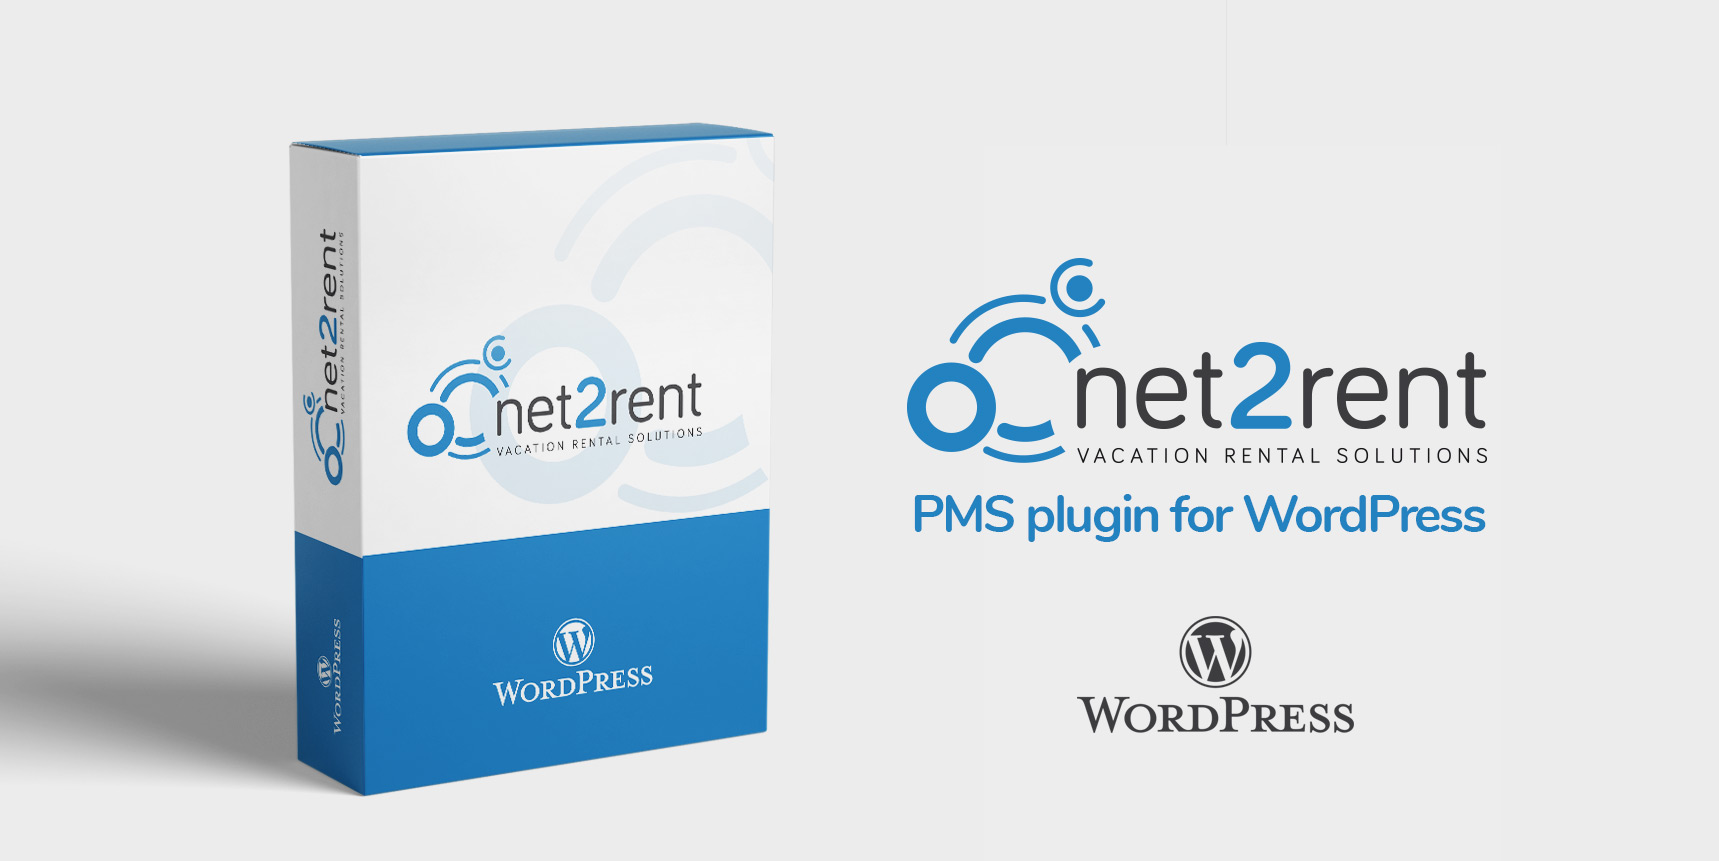 net2rent PMS plugin for WordPress